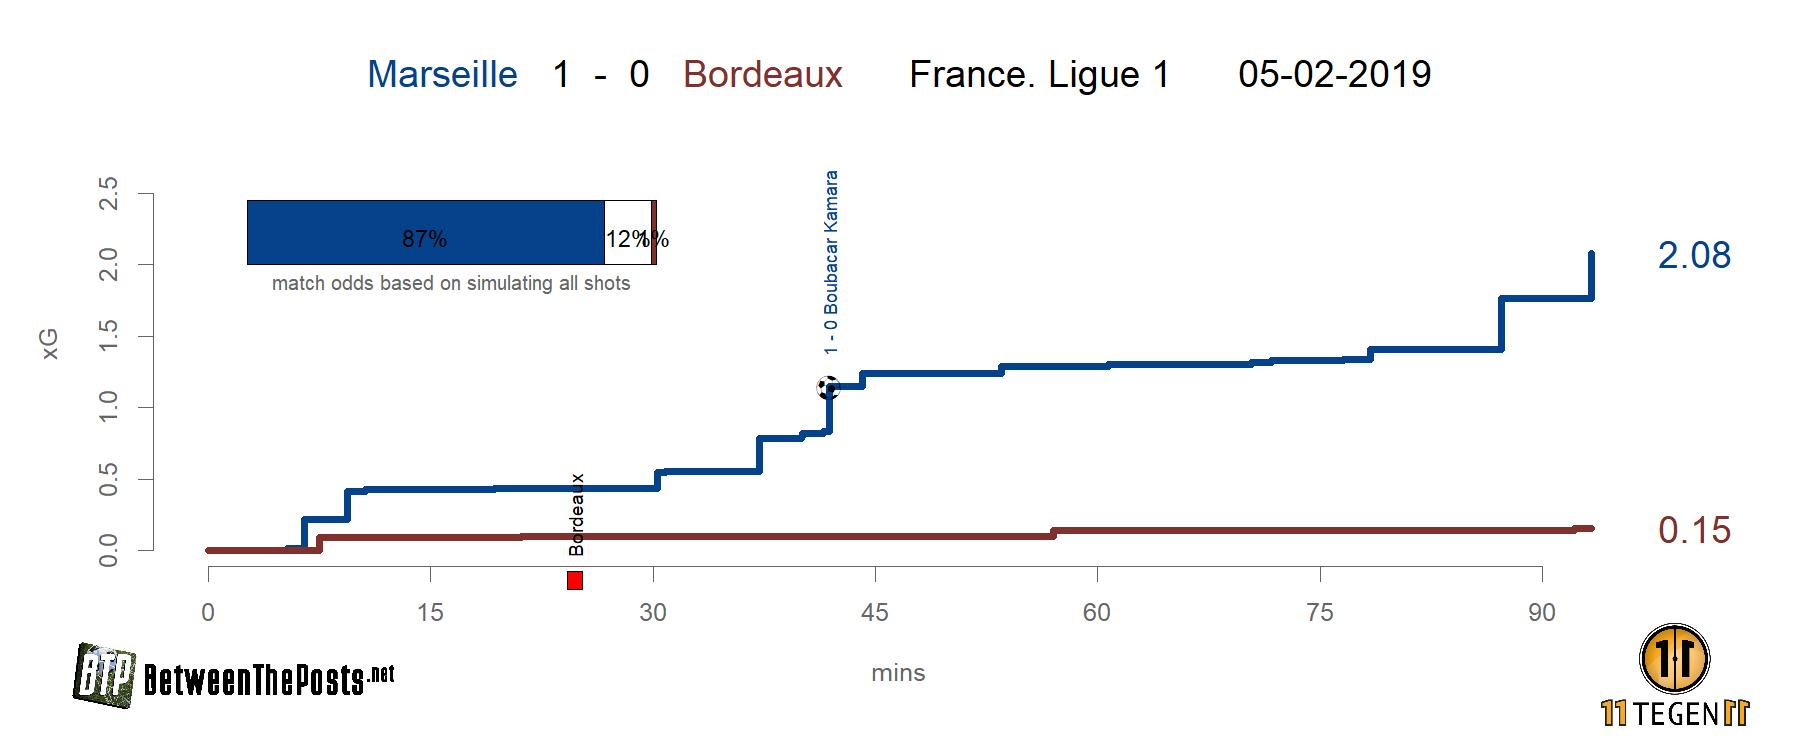 Expected goals plot Oympique Marseille - Girondins de Bordeaux 1-0 Ligue 1